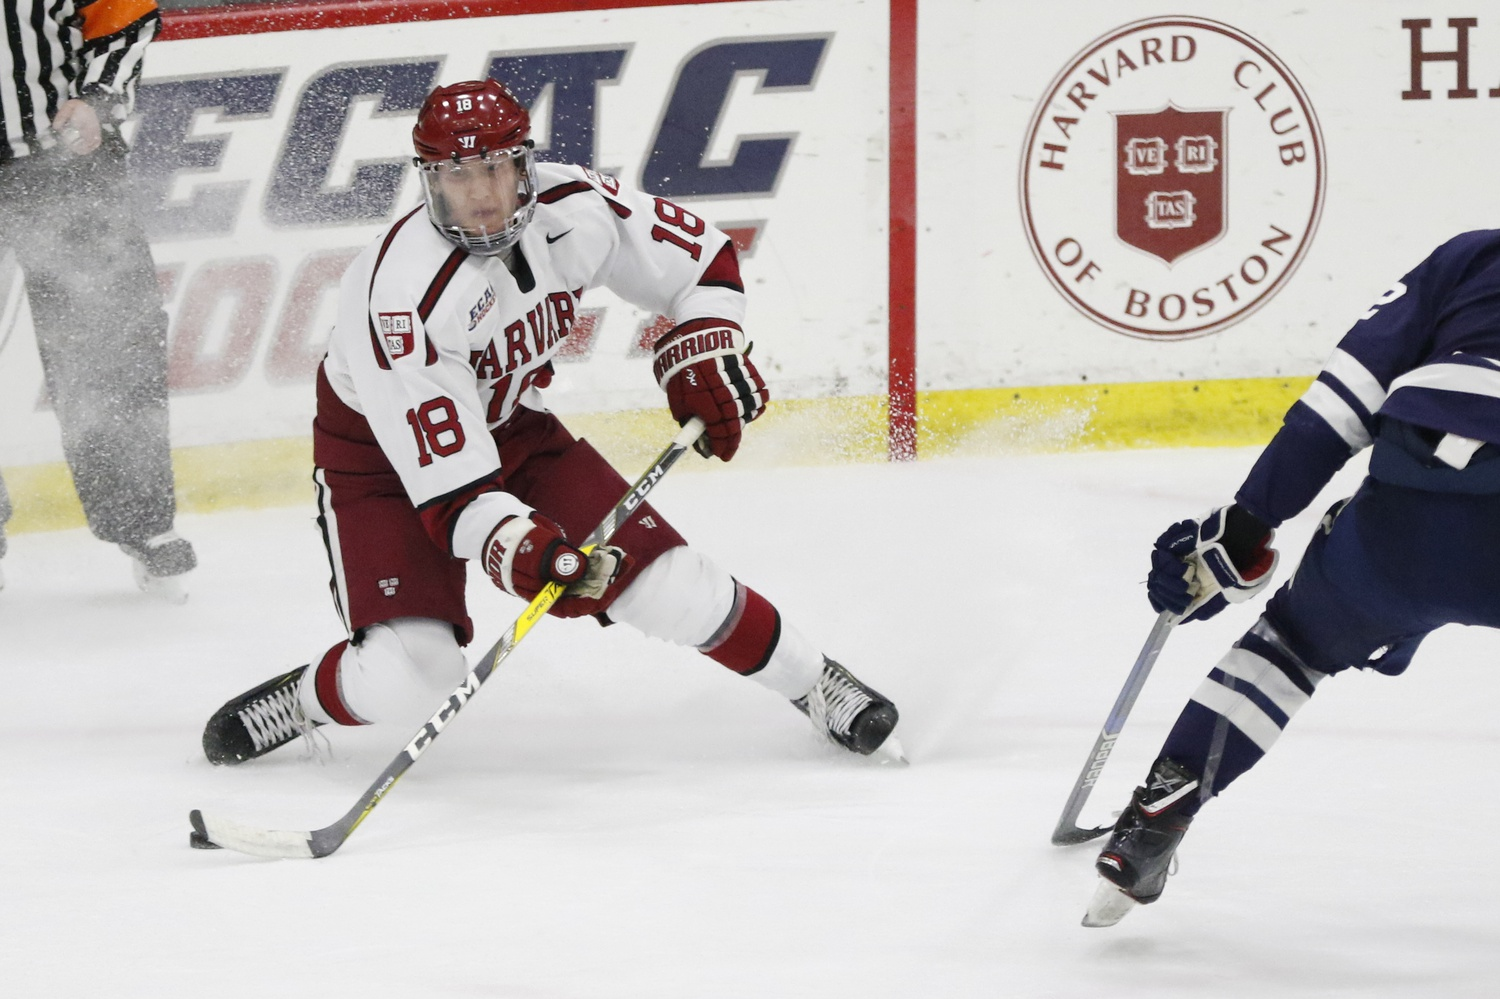 Assuming he returns for his senior season, Adam Fox will continue to set a bold on-ice example for a Crimson squad that promises to be offensively gifted under his leadership.